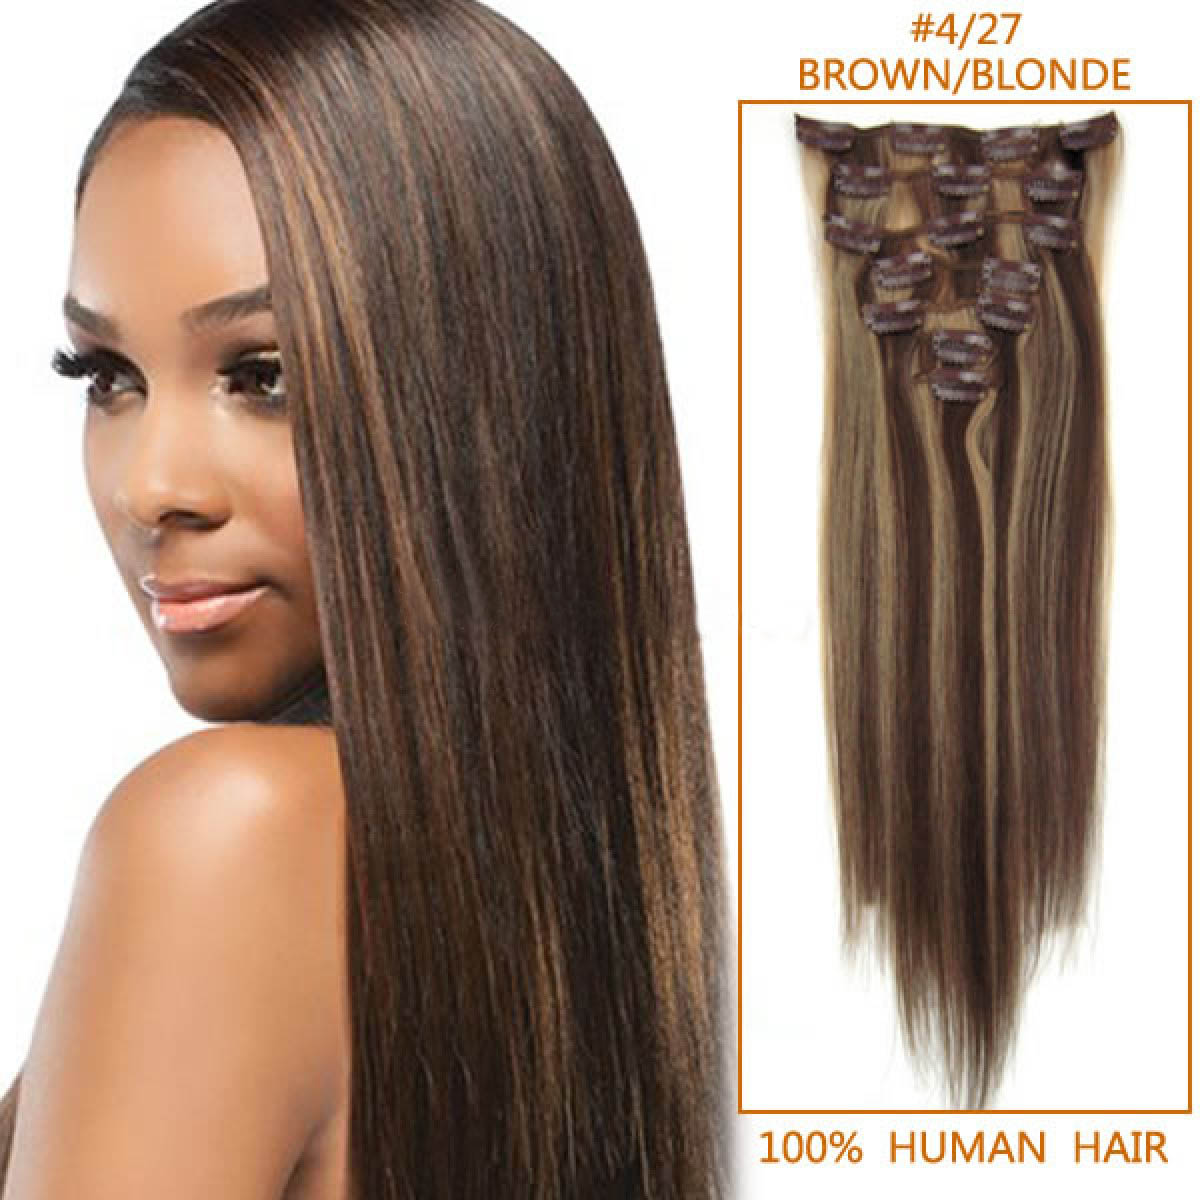 Inch 427 brownblonde clip in remy human hair extensions 7pcs 20 inch 427 brownblonde clip in remy human hair extensions 7pcs pmusecretfo Image collections